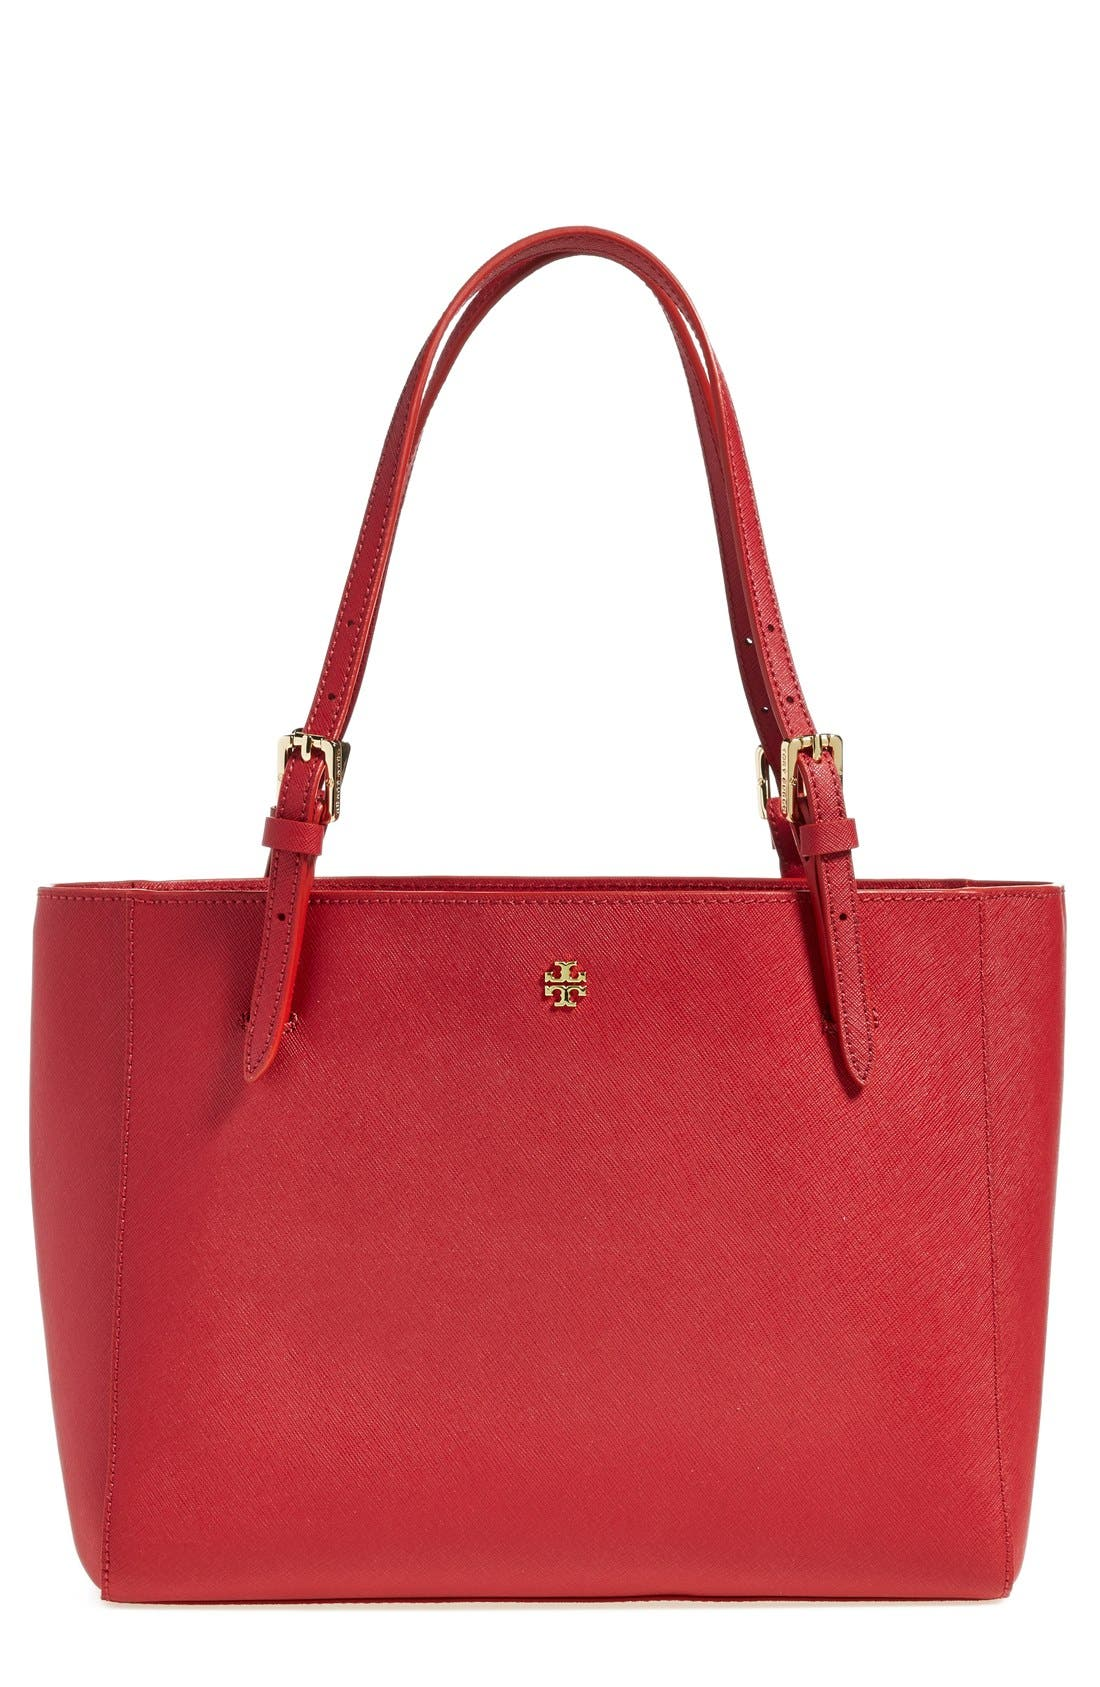 'Small York' Saffiano Leather Buckle Tote,                             Main thumbnail 2, color,